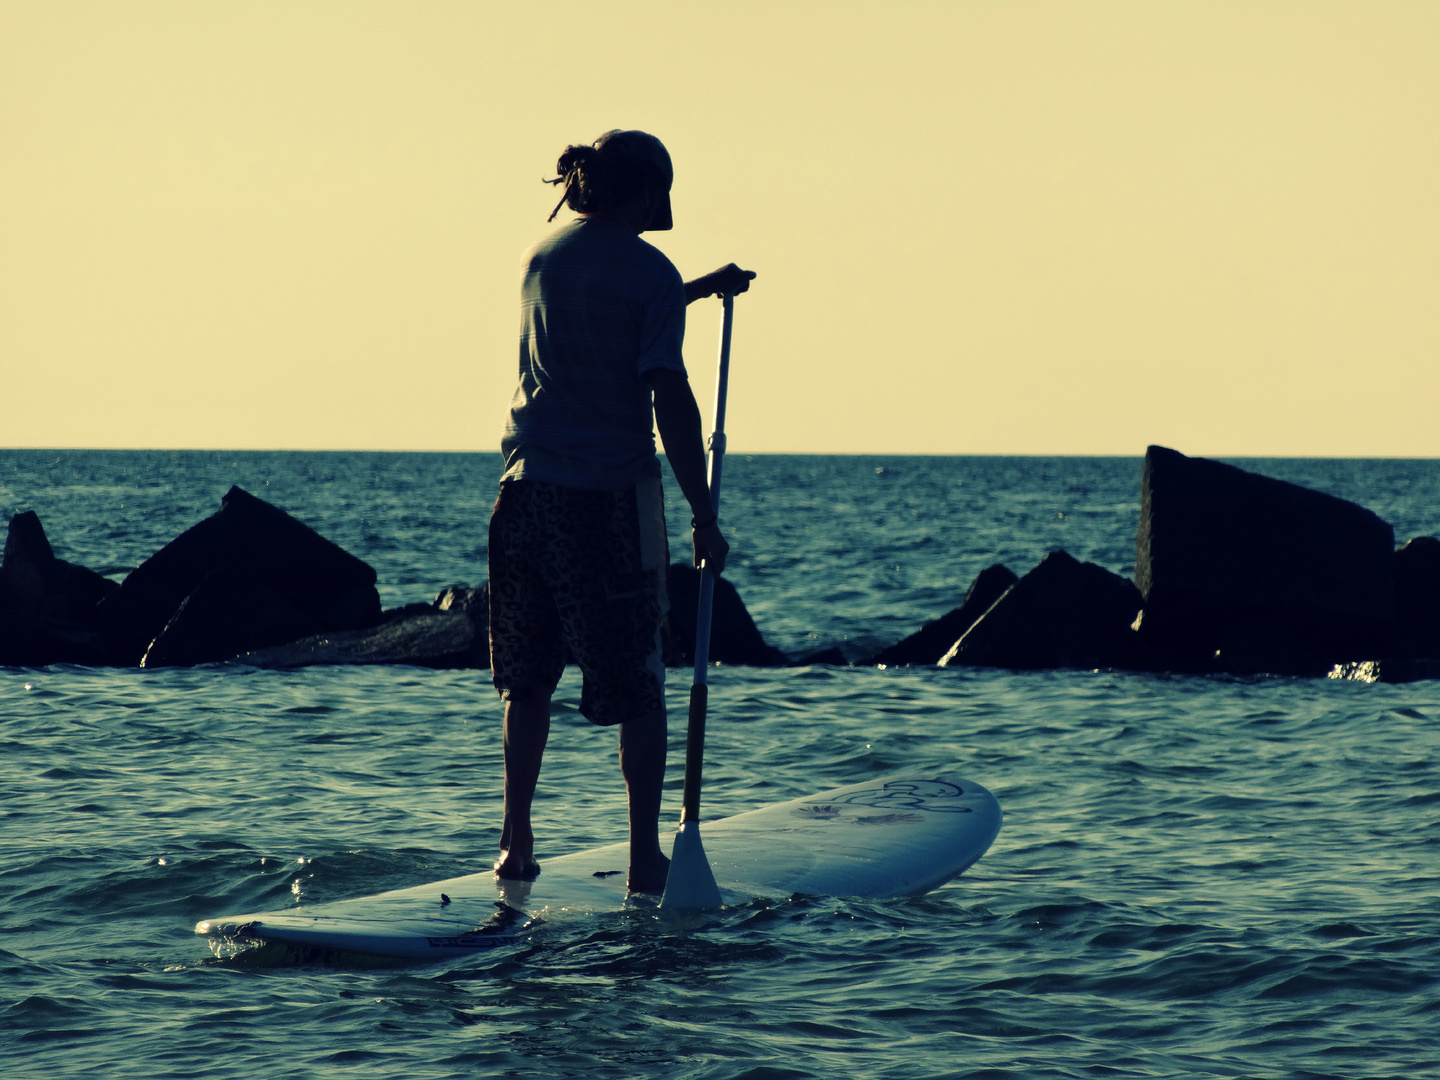 stand up paddling ...